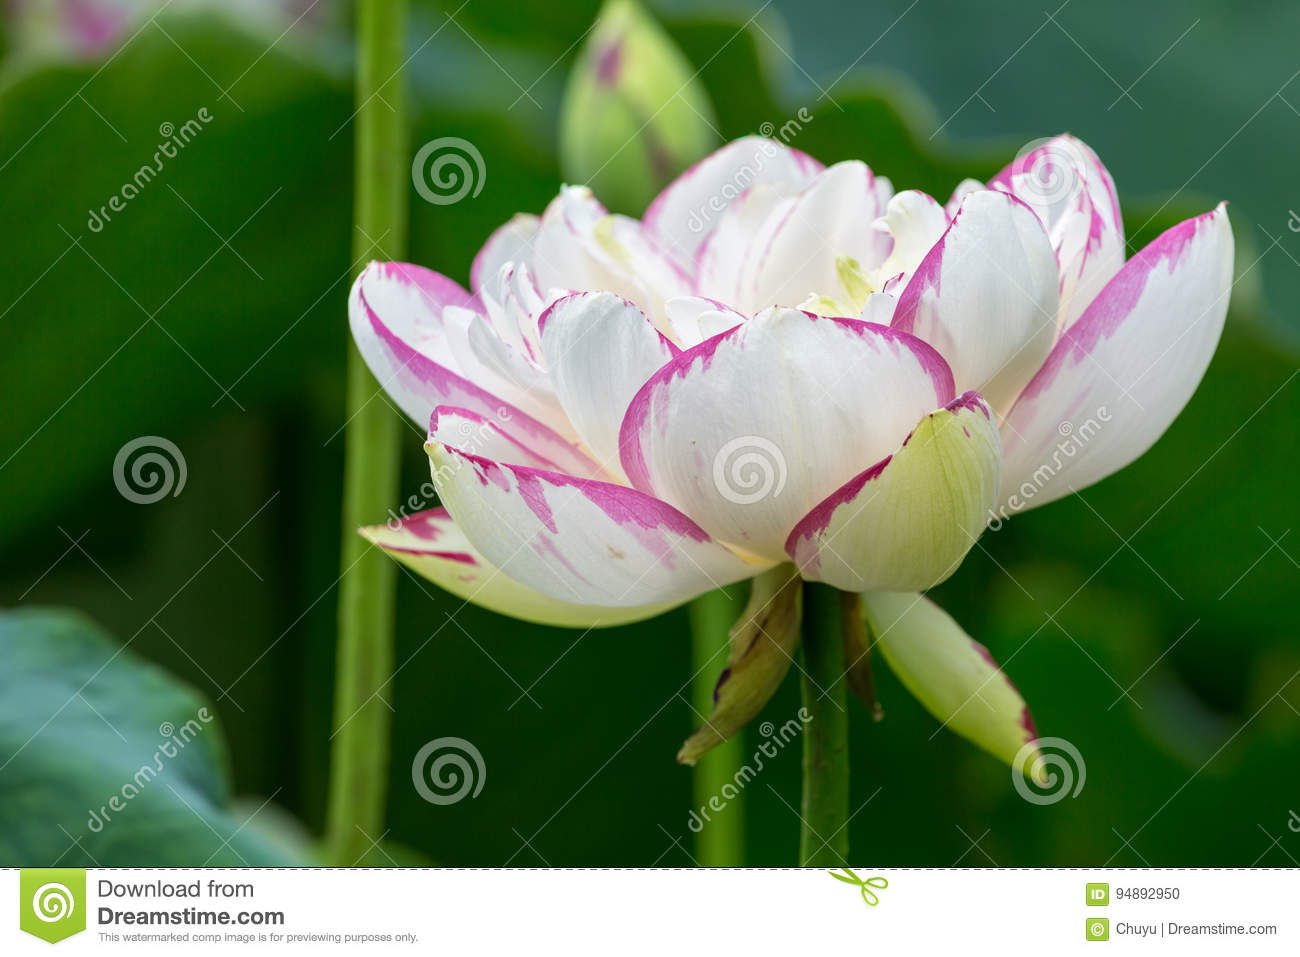 Buddha lotus flower closeup stock photo image of blossom buddha download buddha lotus flower closeup stock photo image of blossom buddha 94892950 izmirmasajfo